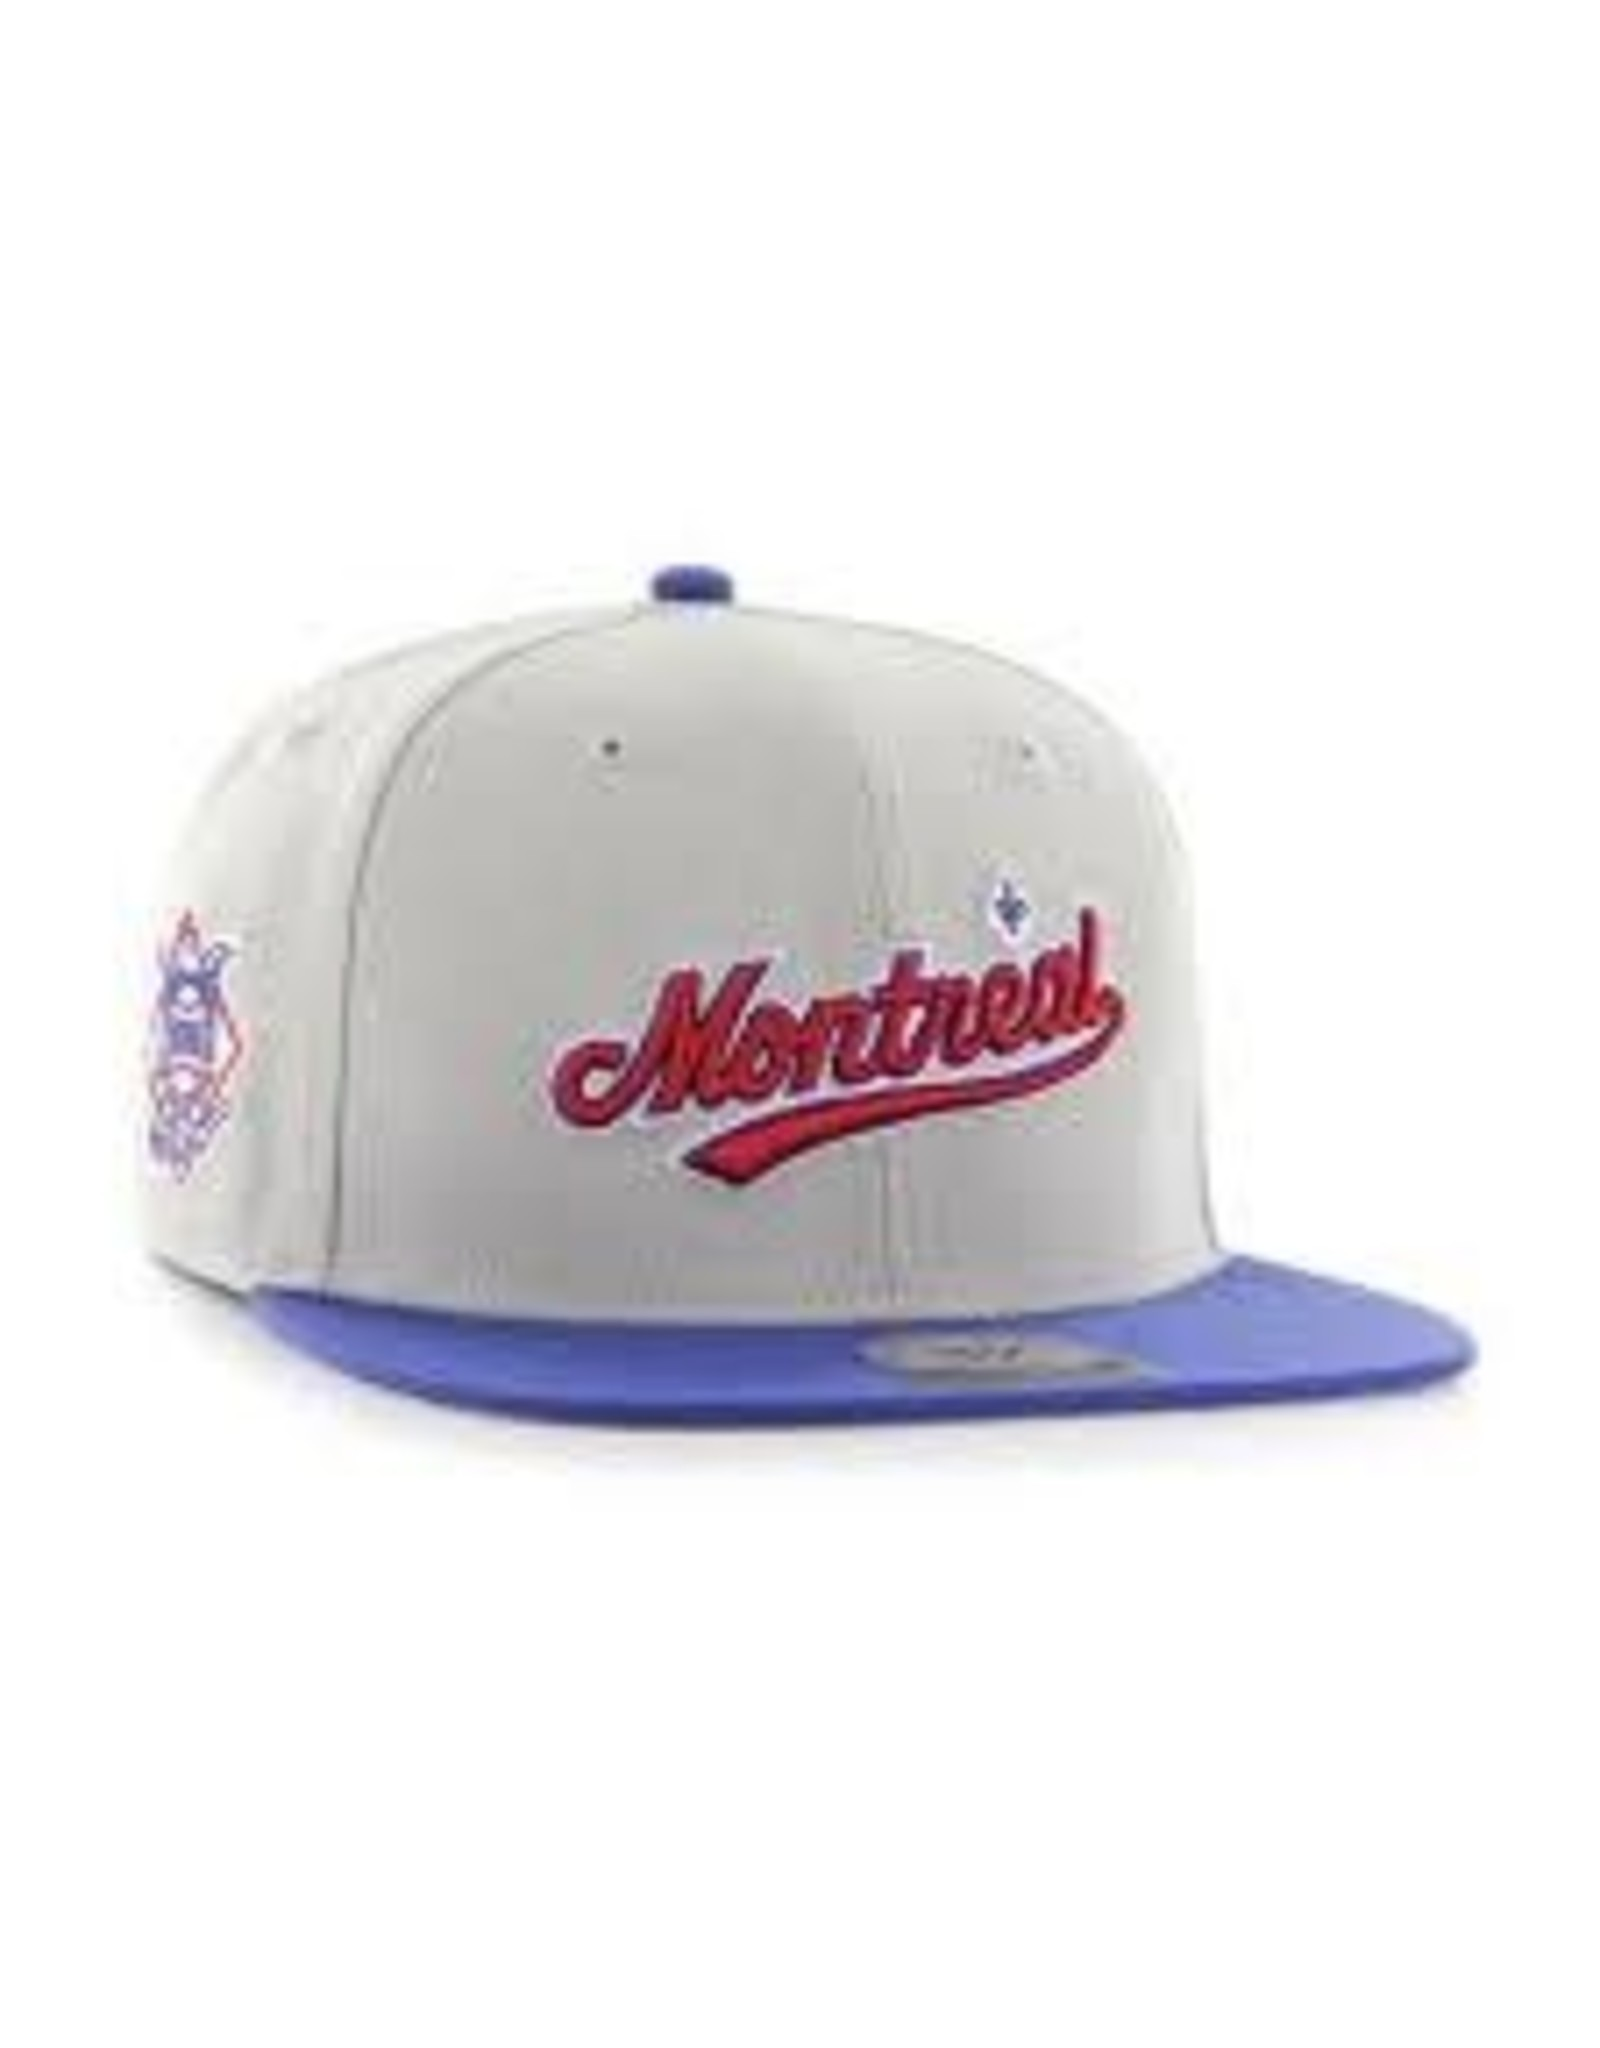 47 - Expos MLB Sure Shot 2 Tone Captain Cap